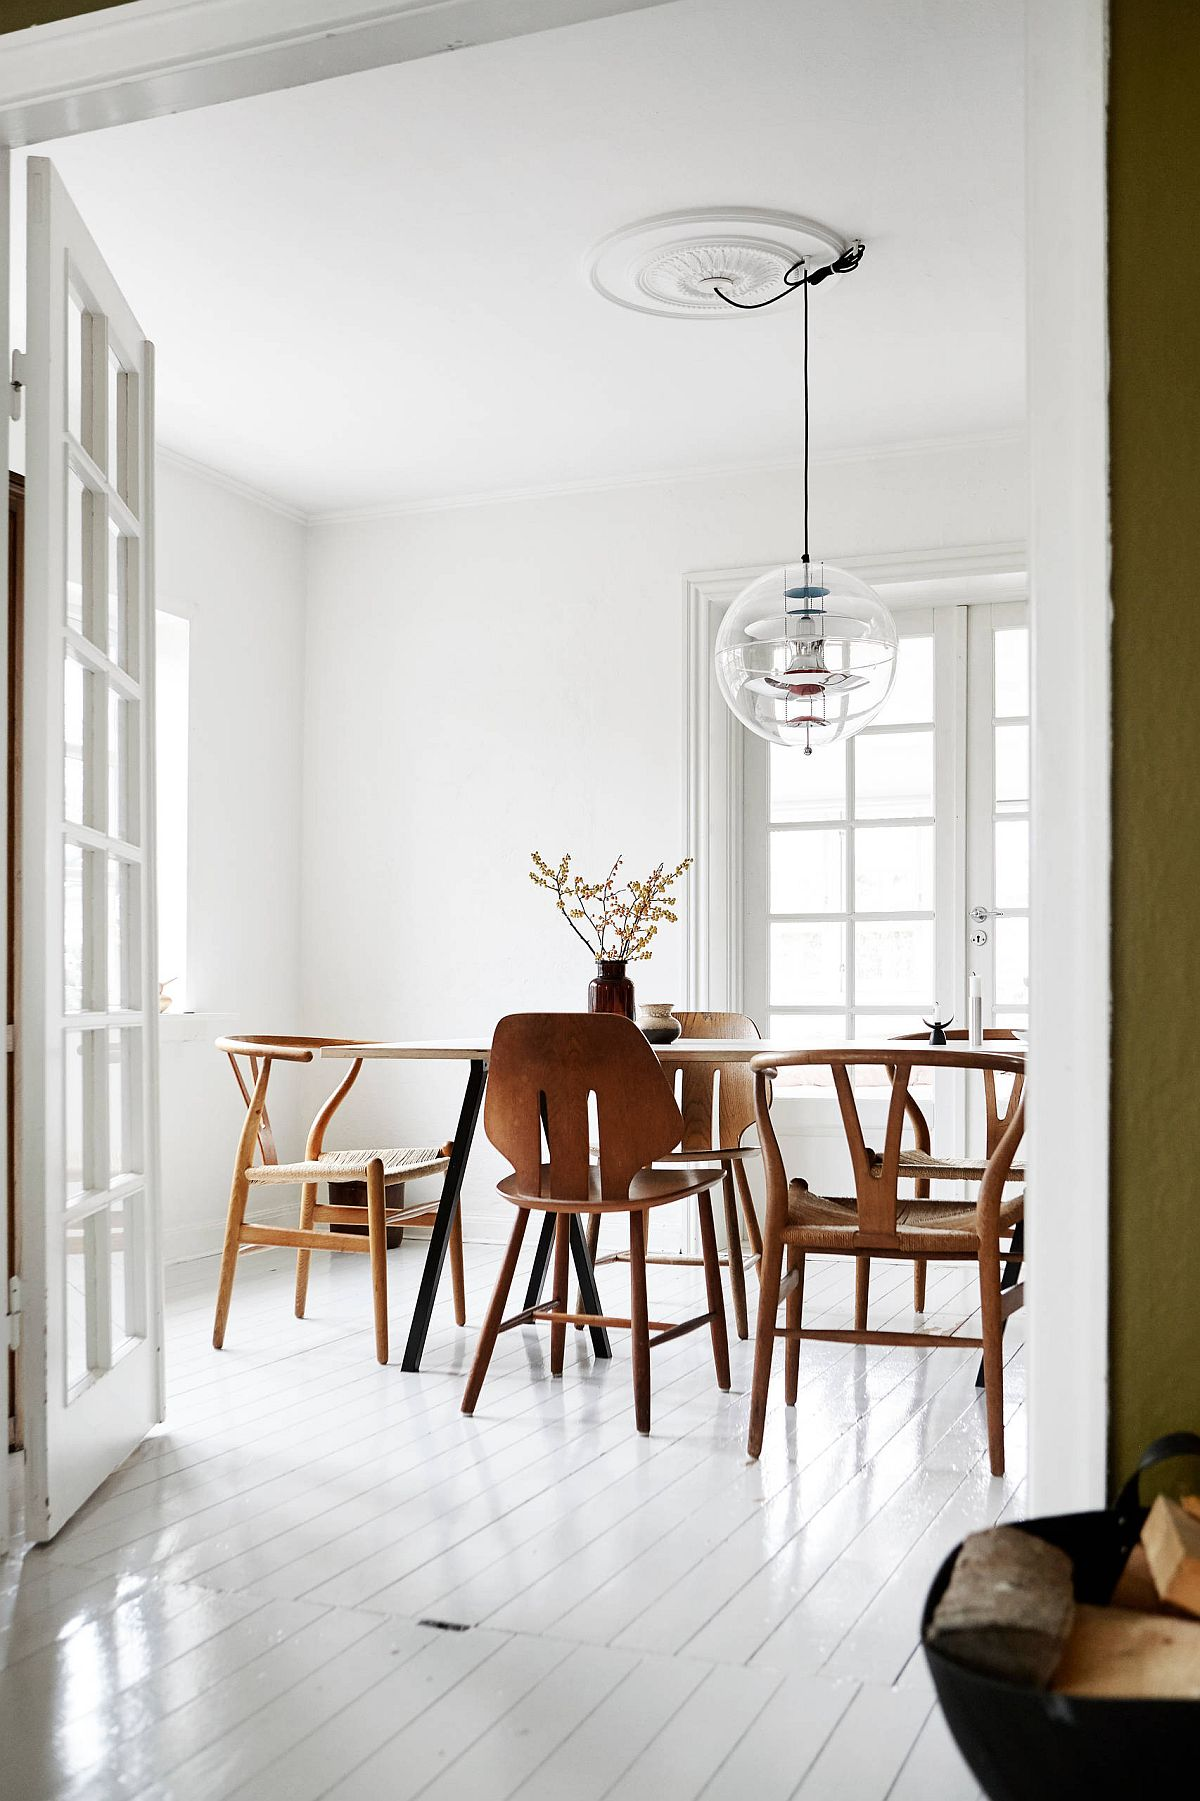 Polished and light-filled Scandinavian style dining room in white and wood